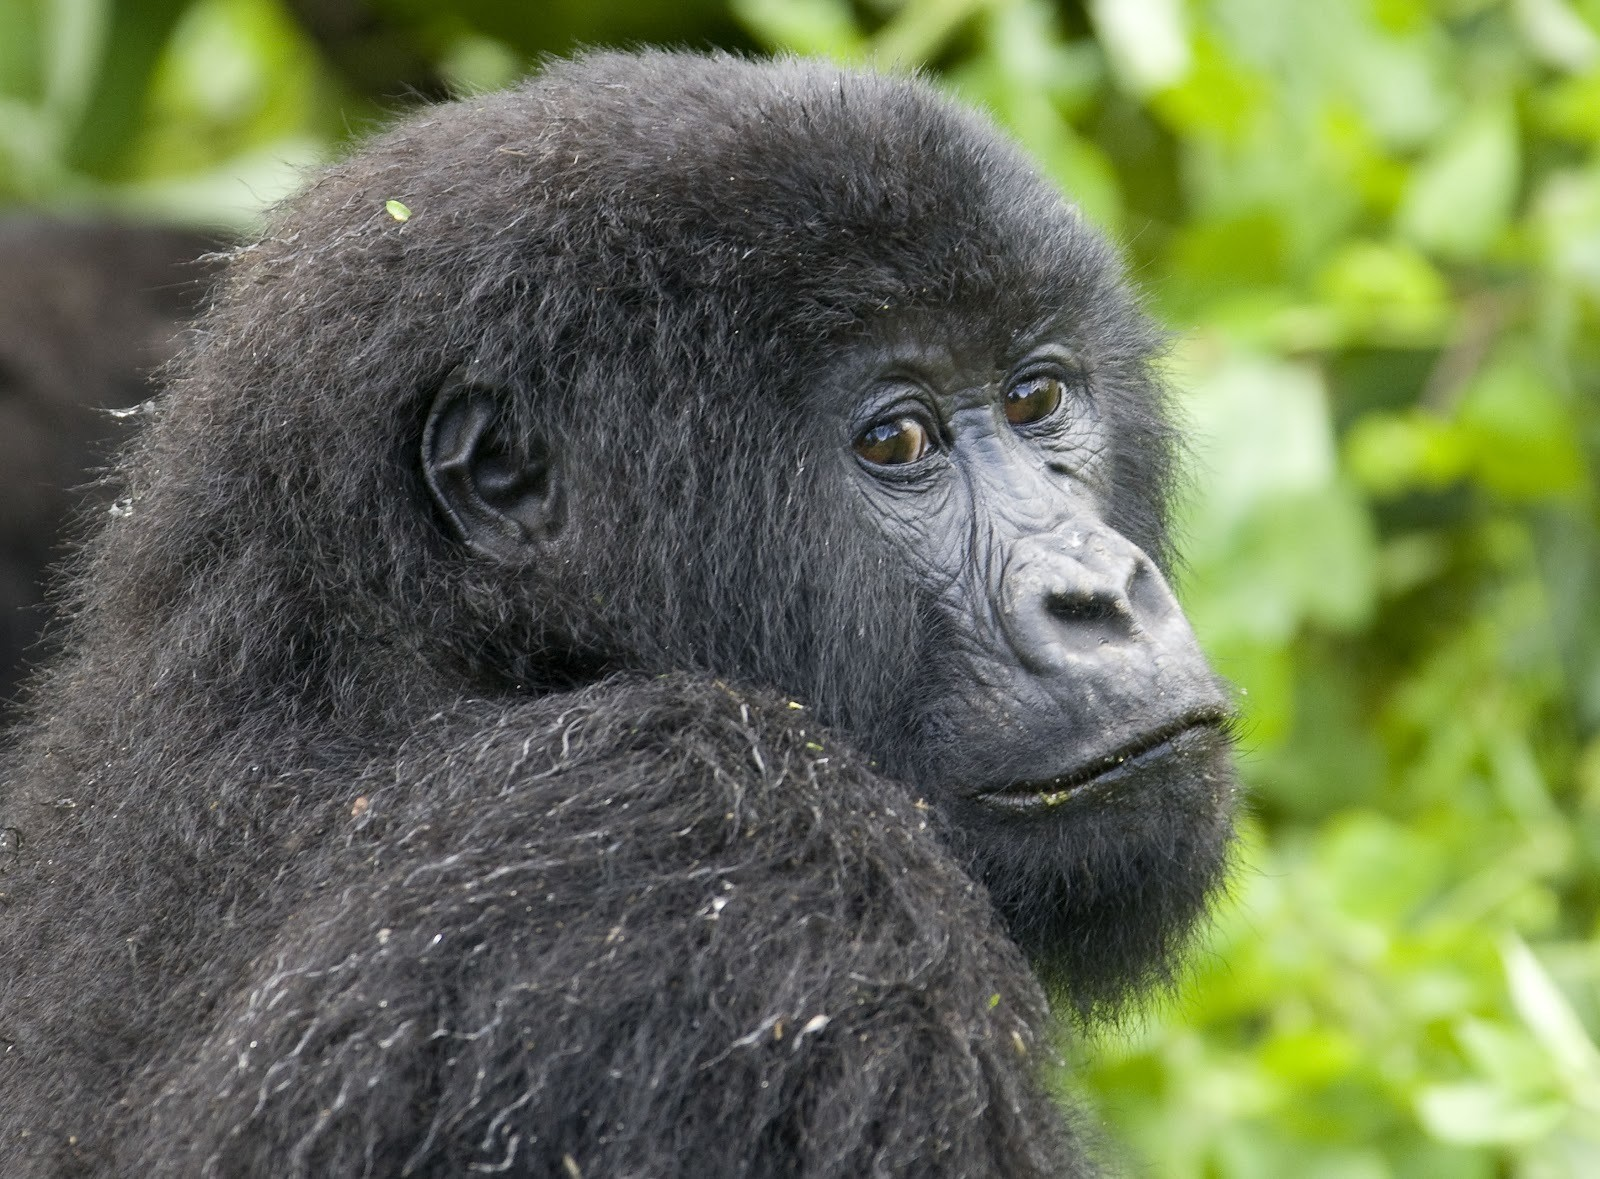 A mountain gorilla sits in the forest on the slopes of Mount Mikeno in the Virunga National Park, Eastern DRC December 12, 2008. REUTERS/Peter Andrews (DEMOCRATIC REPUBLIC OF CONGO) - GM1E4CD0A2L01